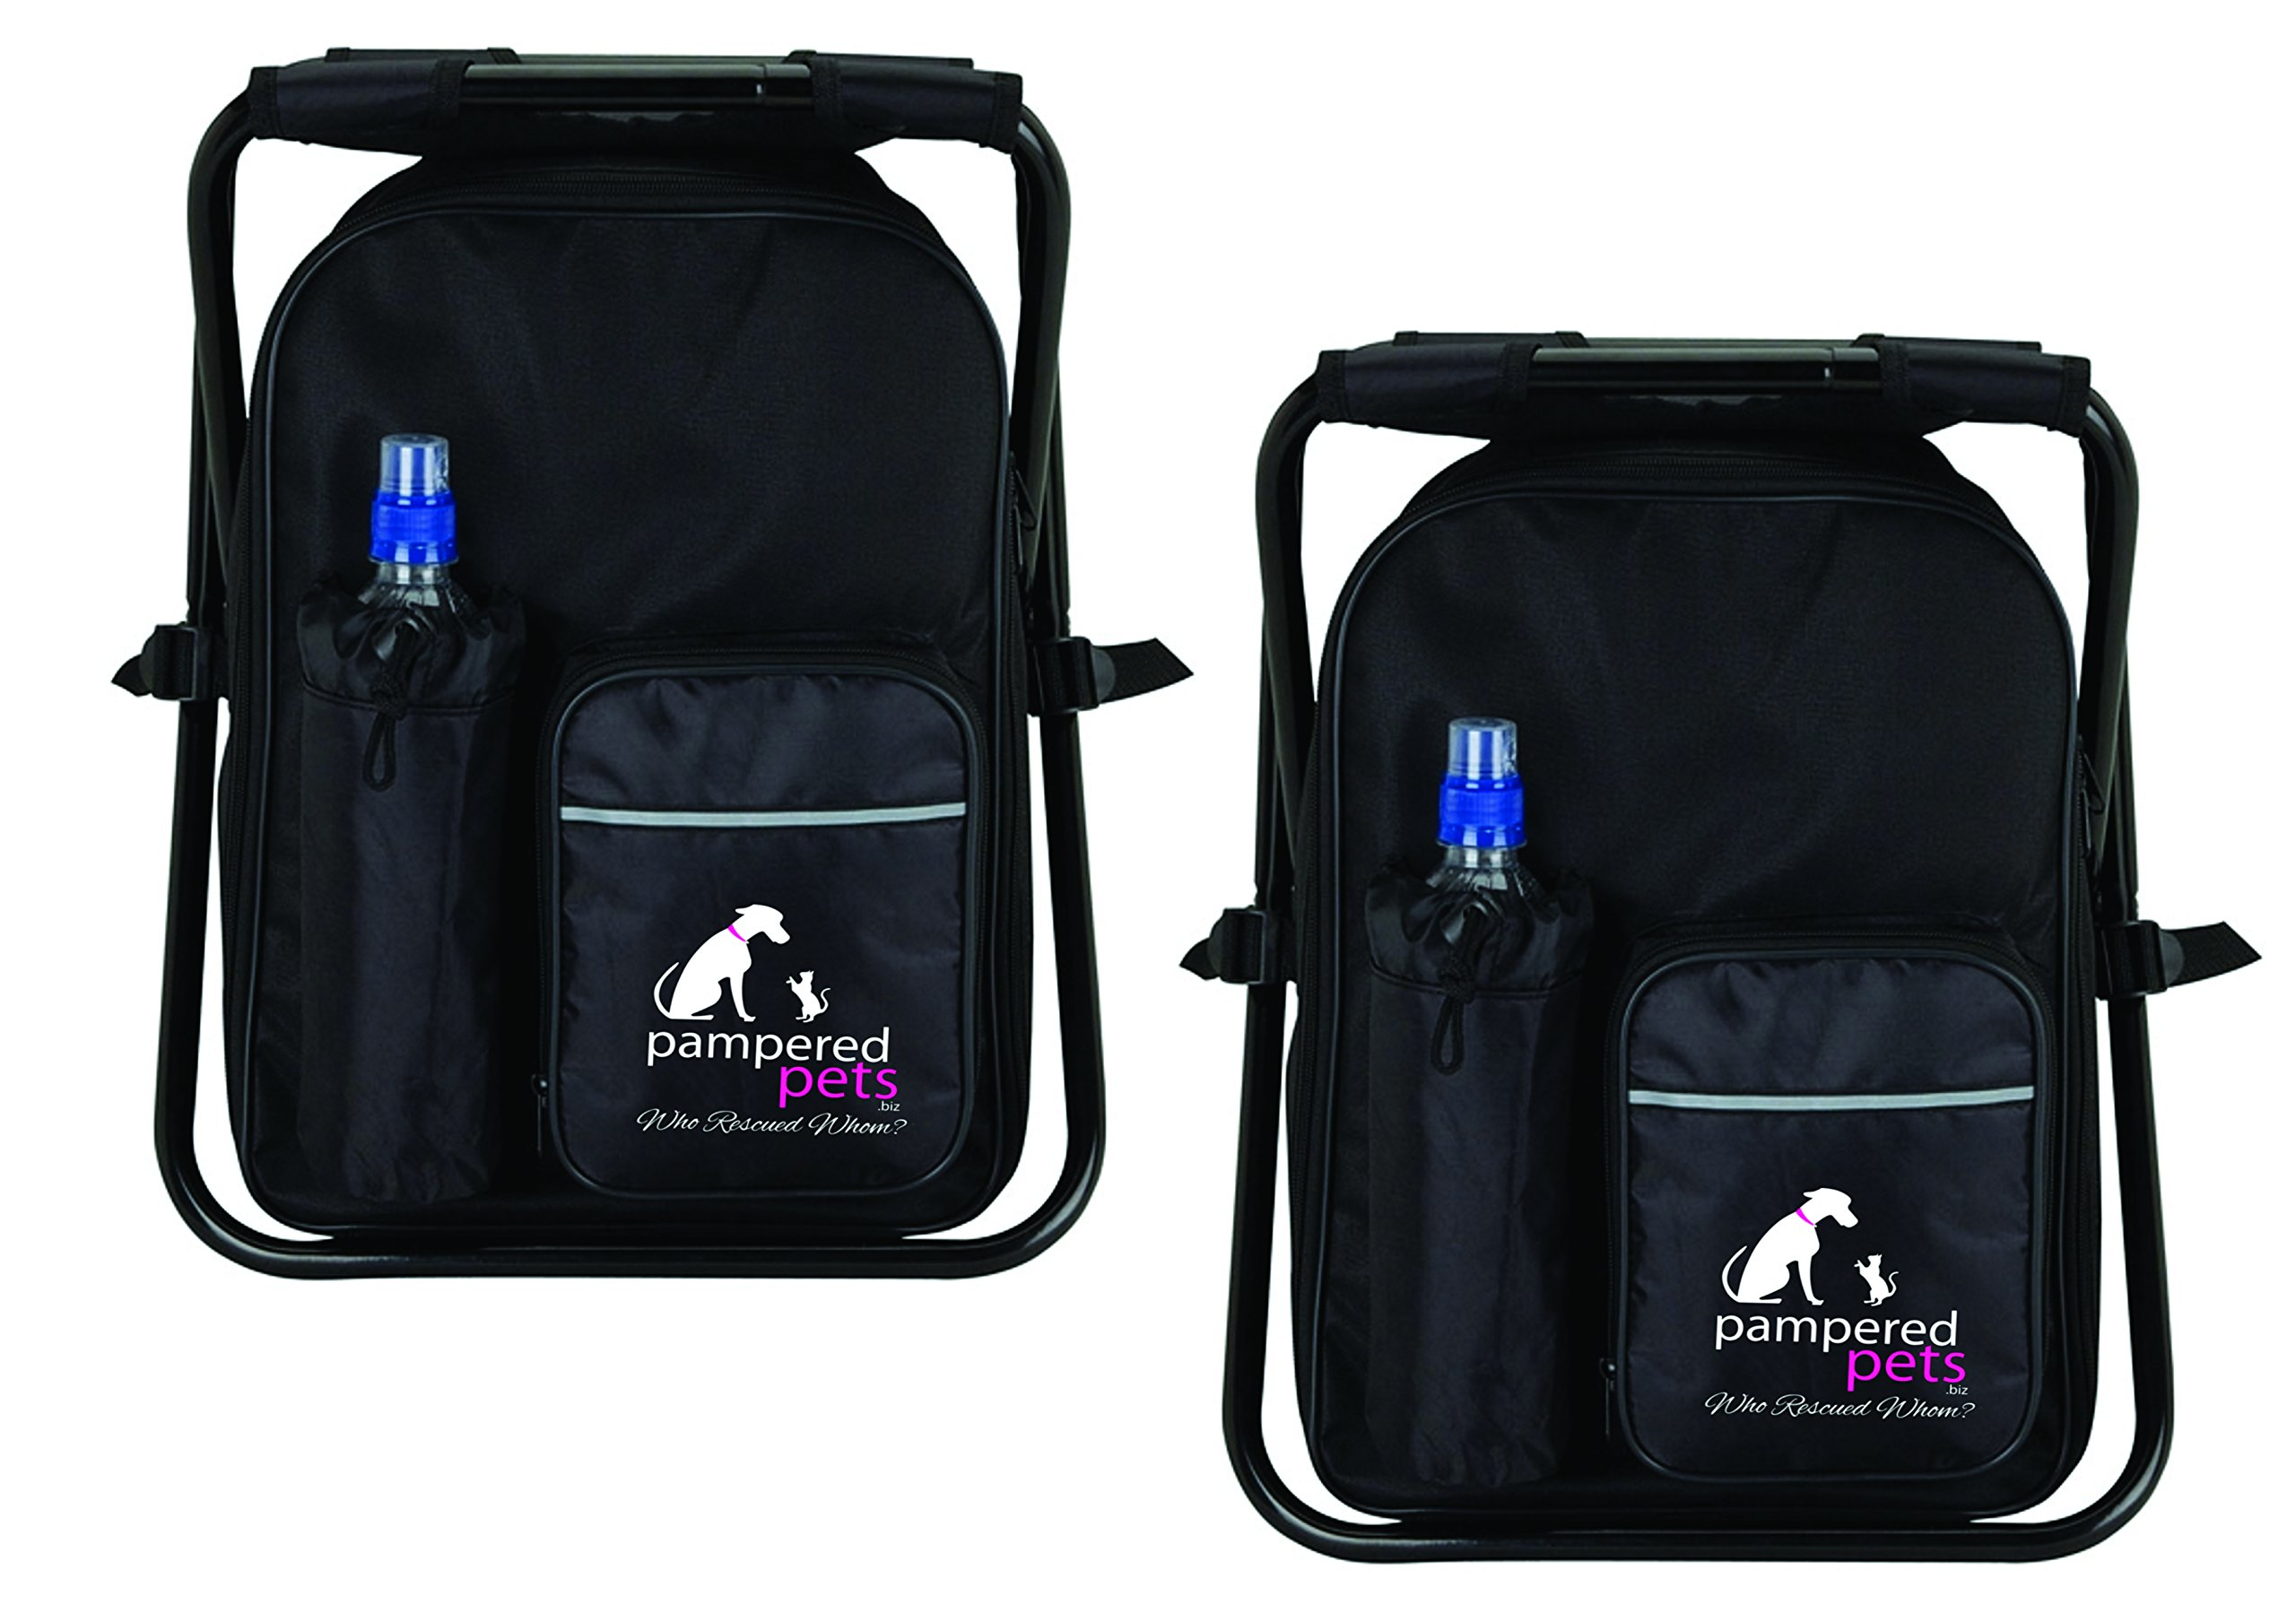 Pampered Pets ''Who Rescued Whom'' Cooler Bag Chair (2 Pack), Black